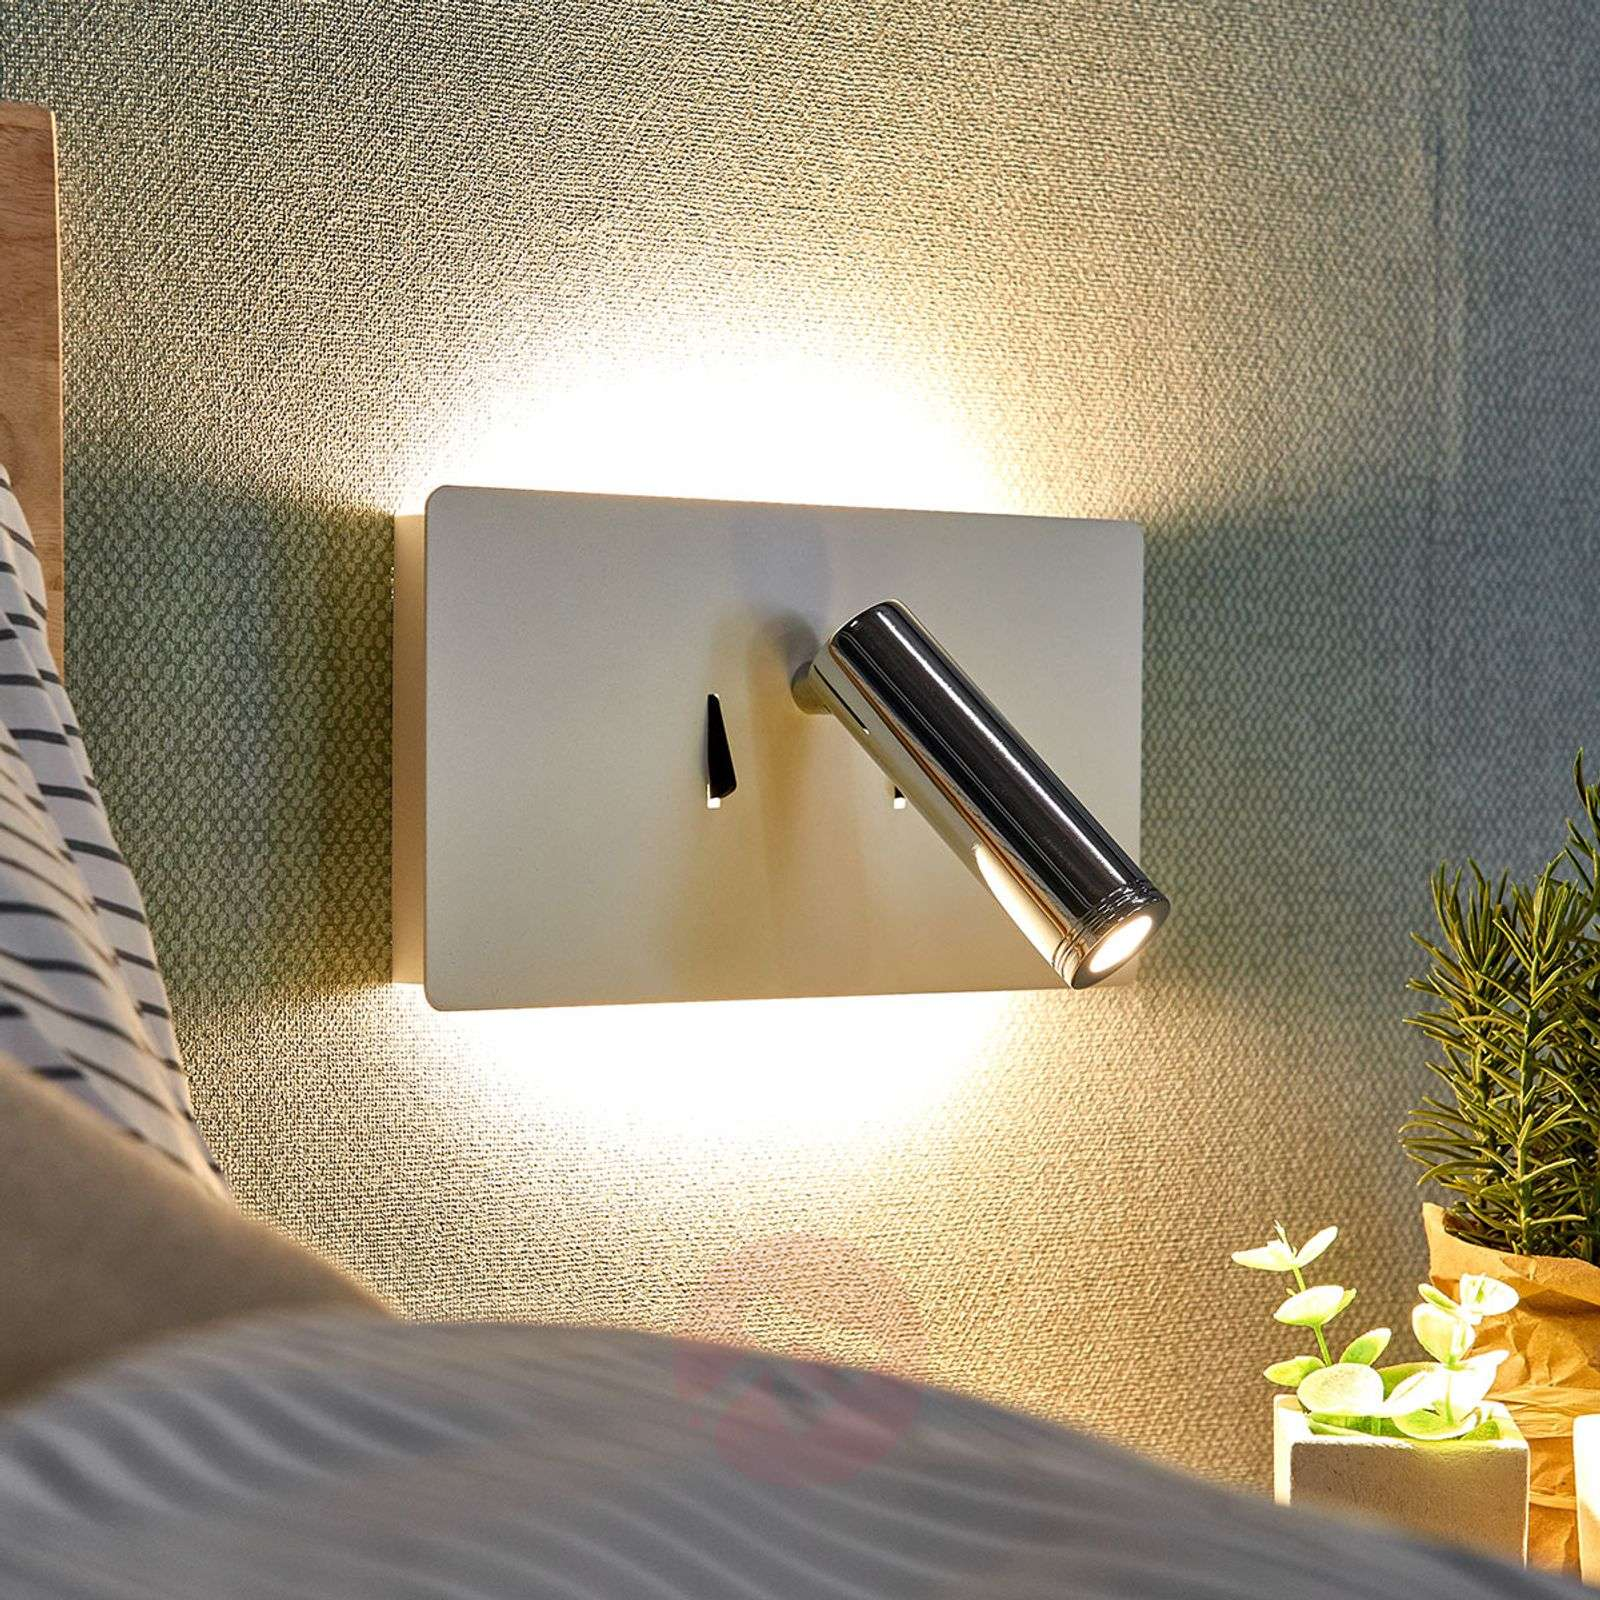 Lámpara de pared LED Elske con lámpara de lectura-9976050-02